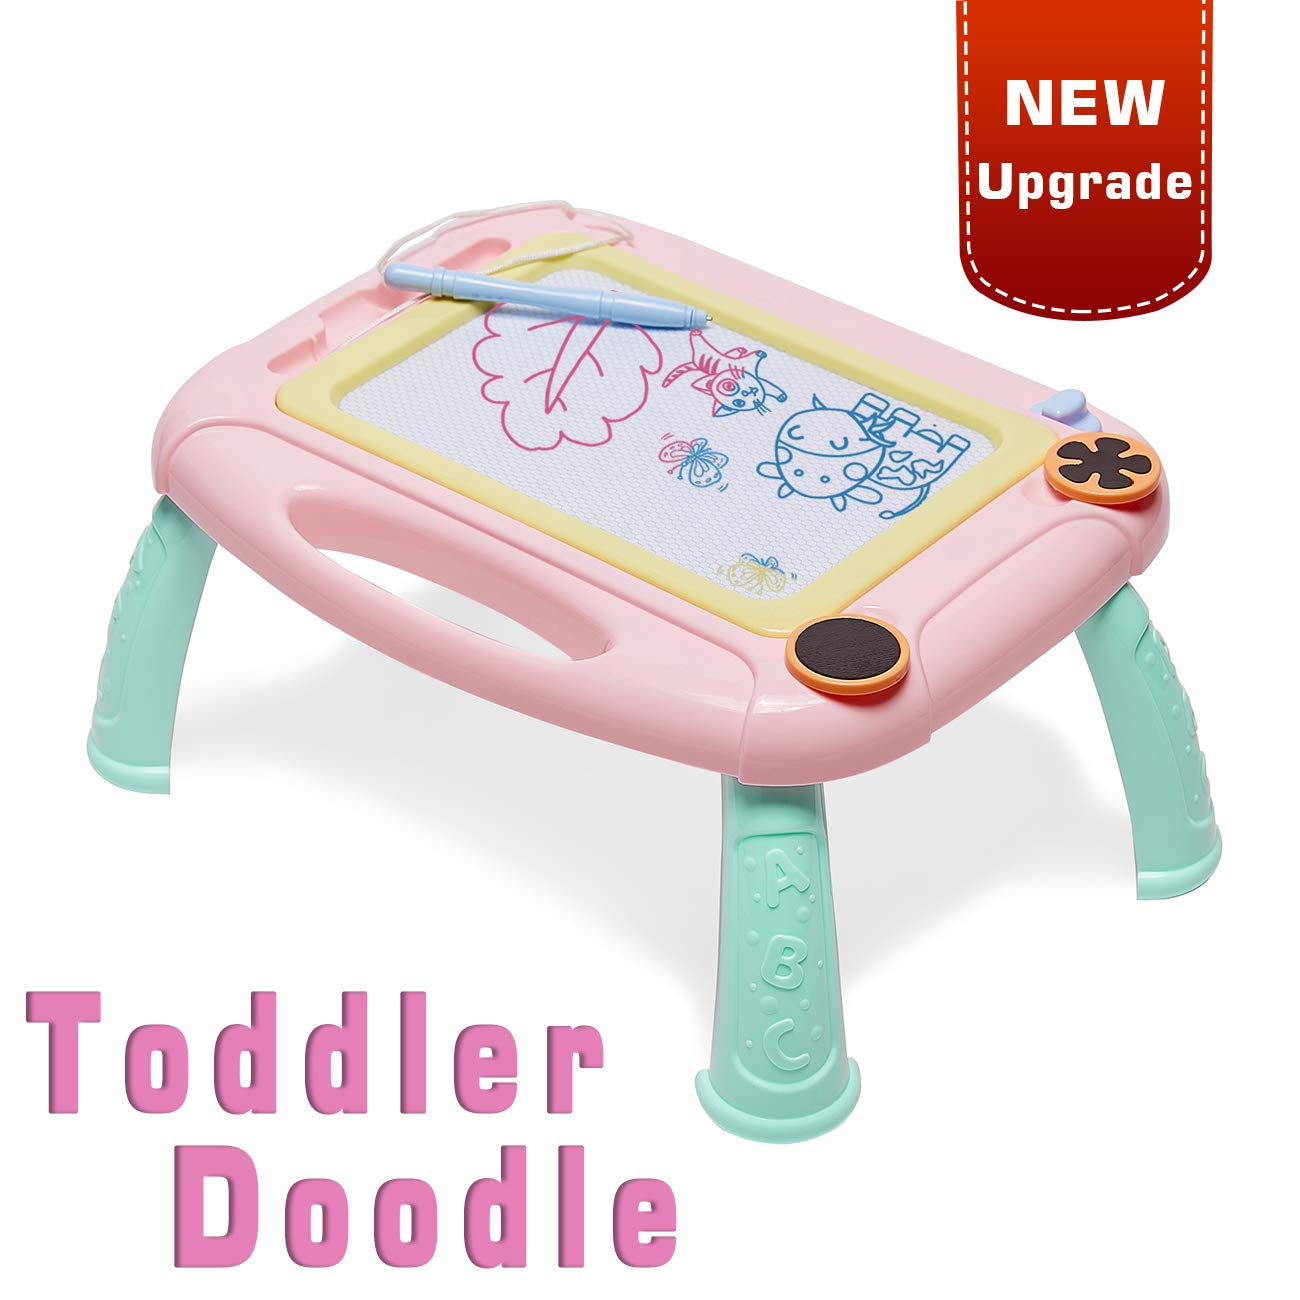 LODBY Toys for 1 2 3 4 Year Old Girls Gifts, Kids Magnetic Drawing Board for Girls Birthday Gifts for 1 2 3 4 Year Old Girls Gifts Age 1-4, Doodle Board Drawing Pad for Toddler Girls Toys Age 1-4